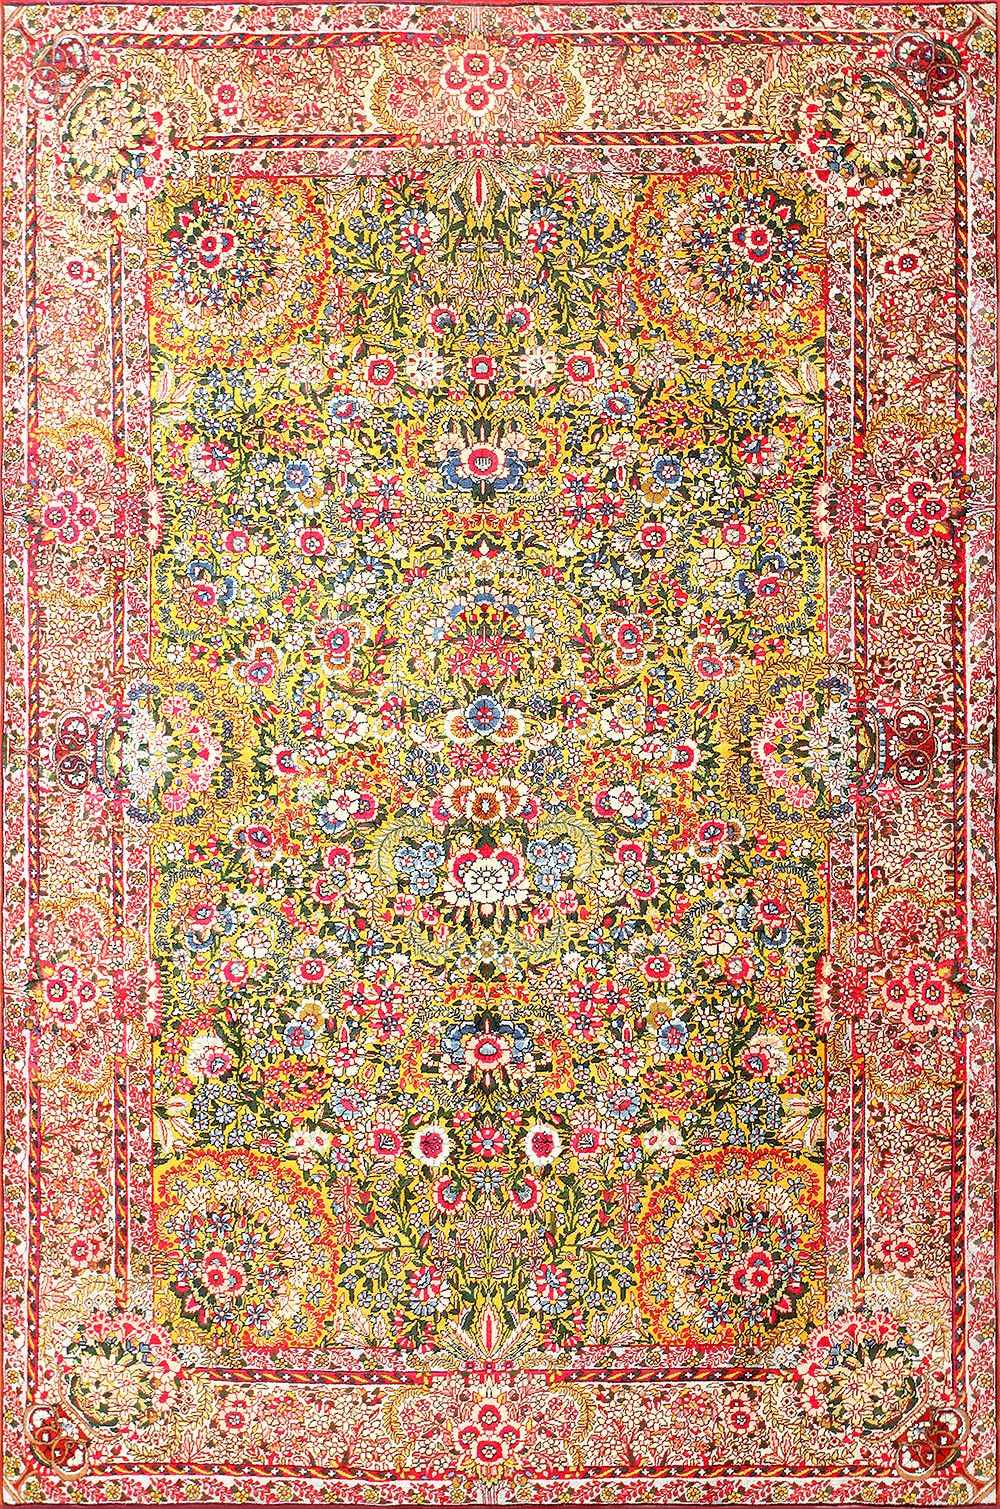 Saffron Yellow Antique Persian Kerman Rug 48659 Antique